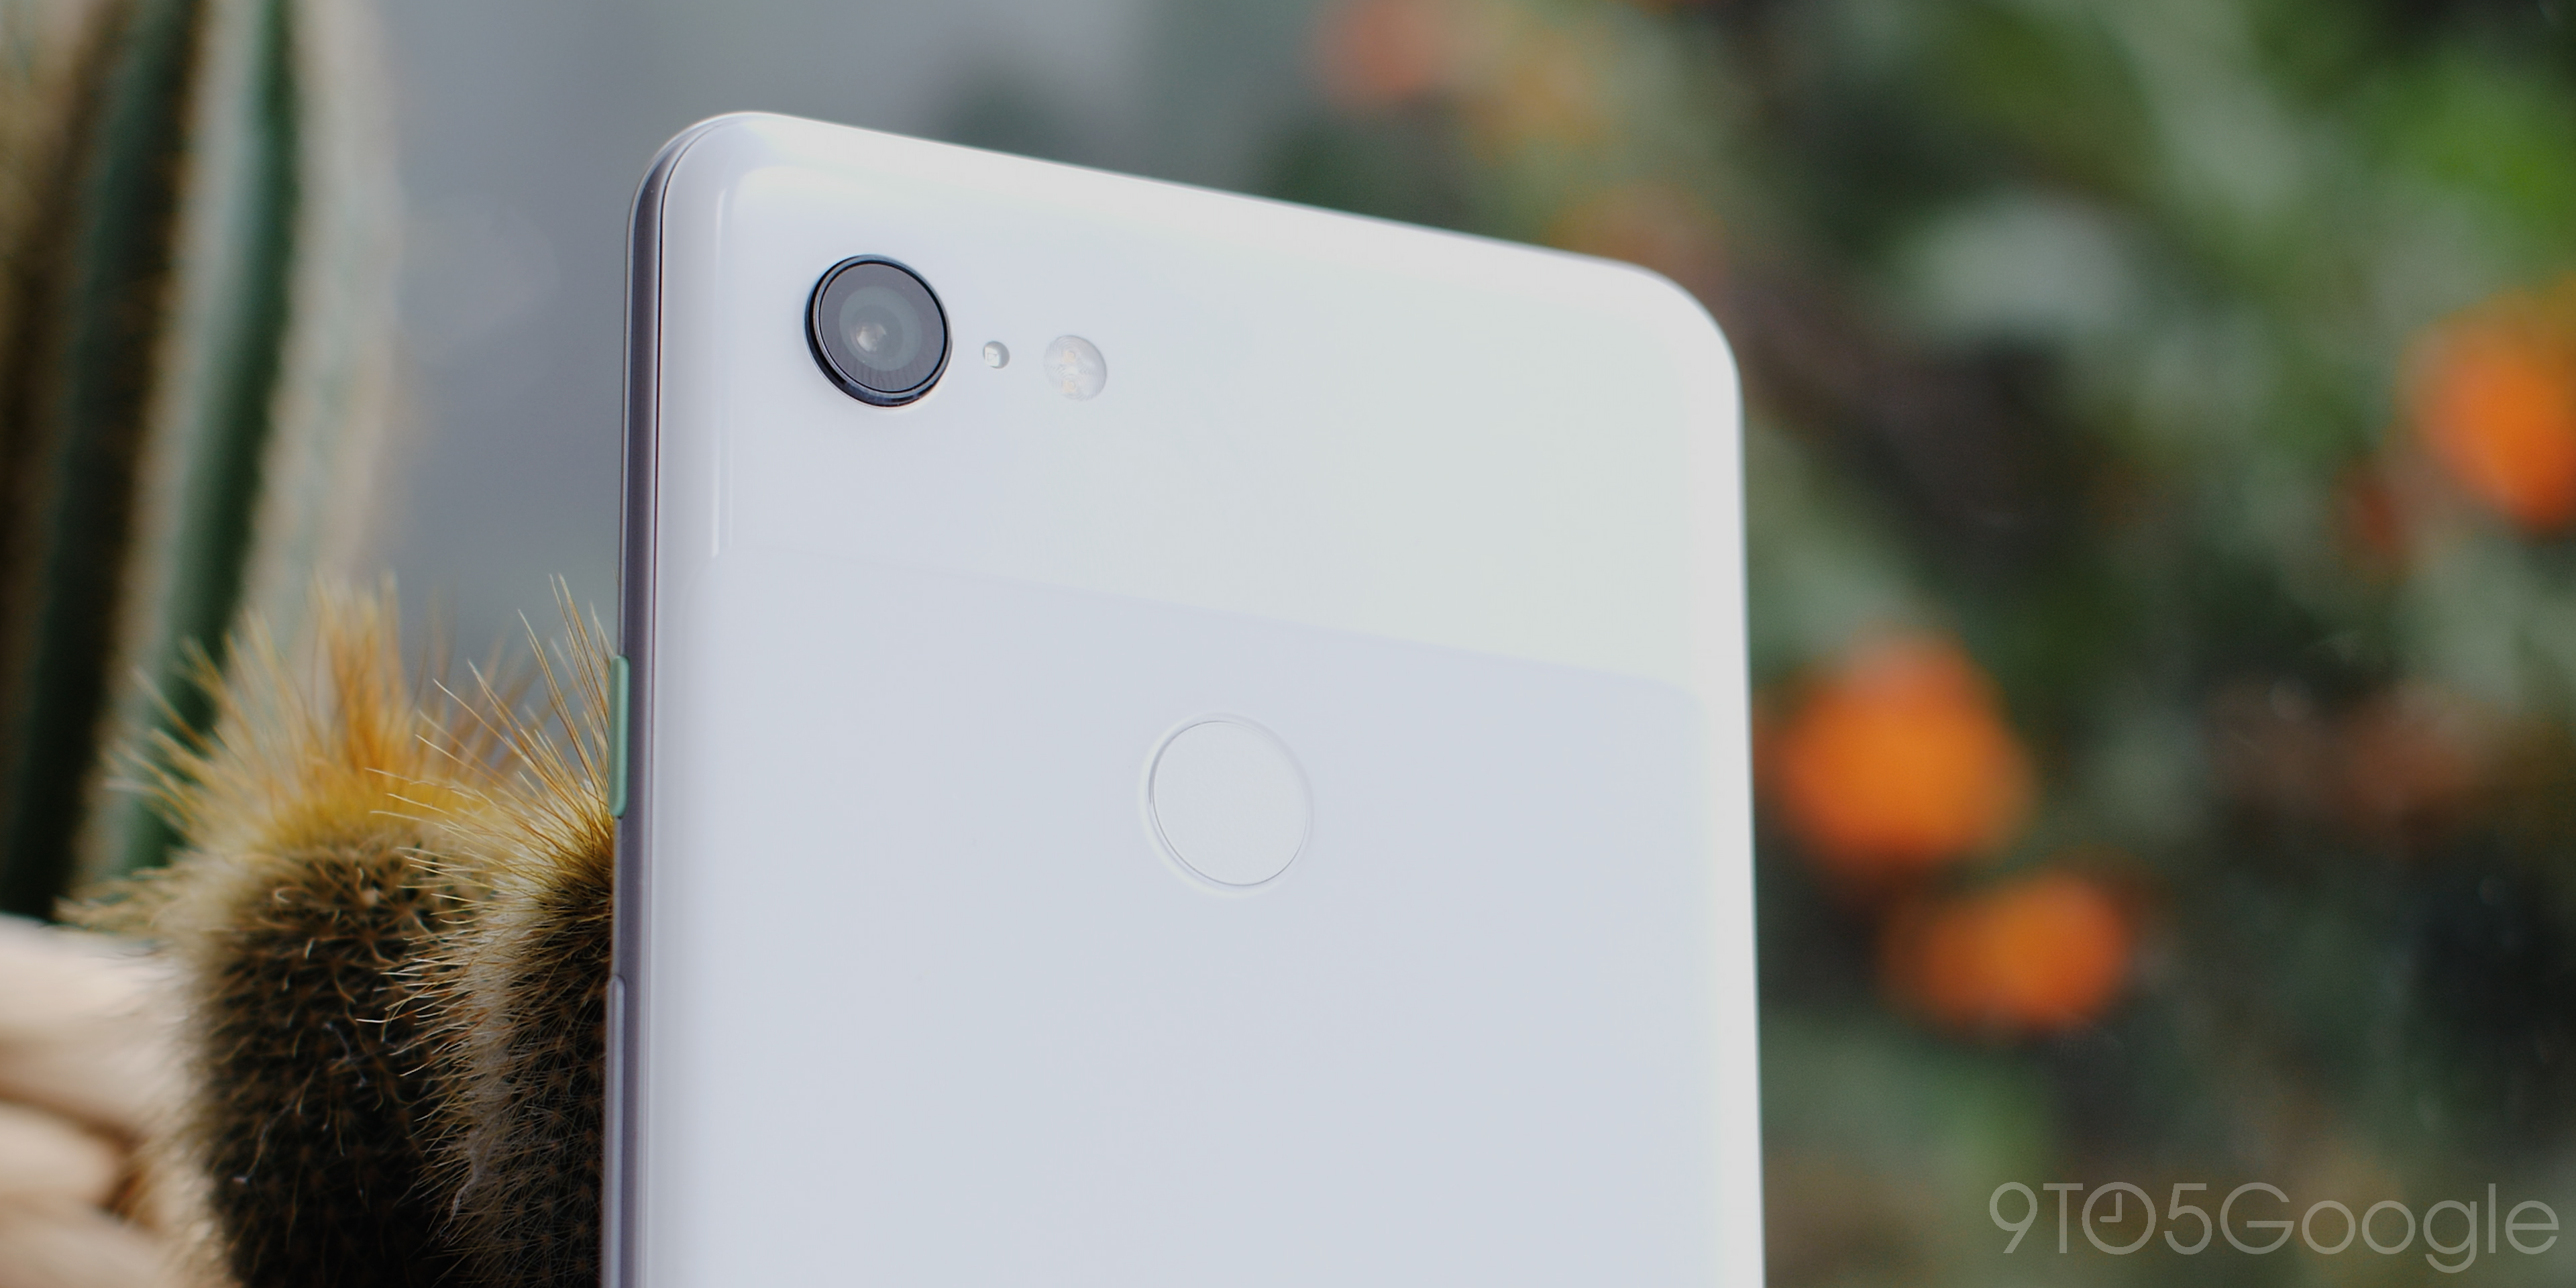 Pixel 3 XL Design and hardware